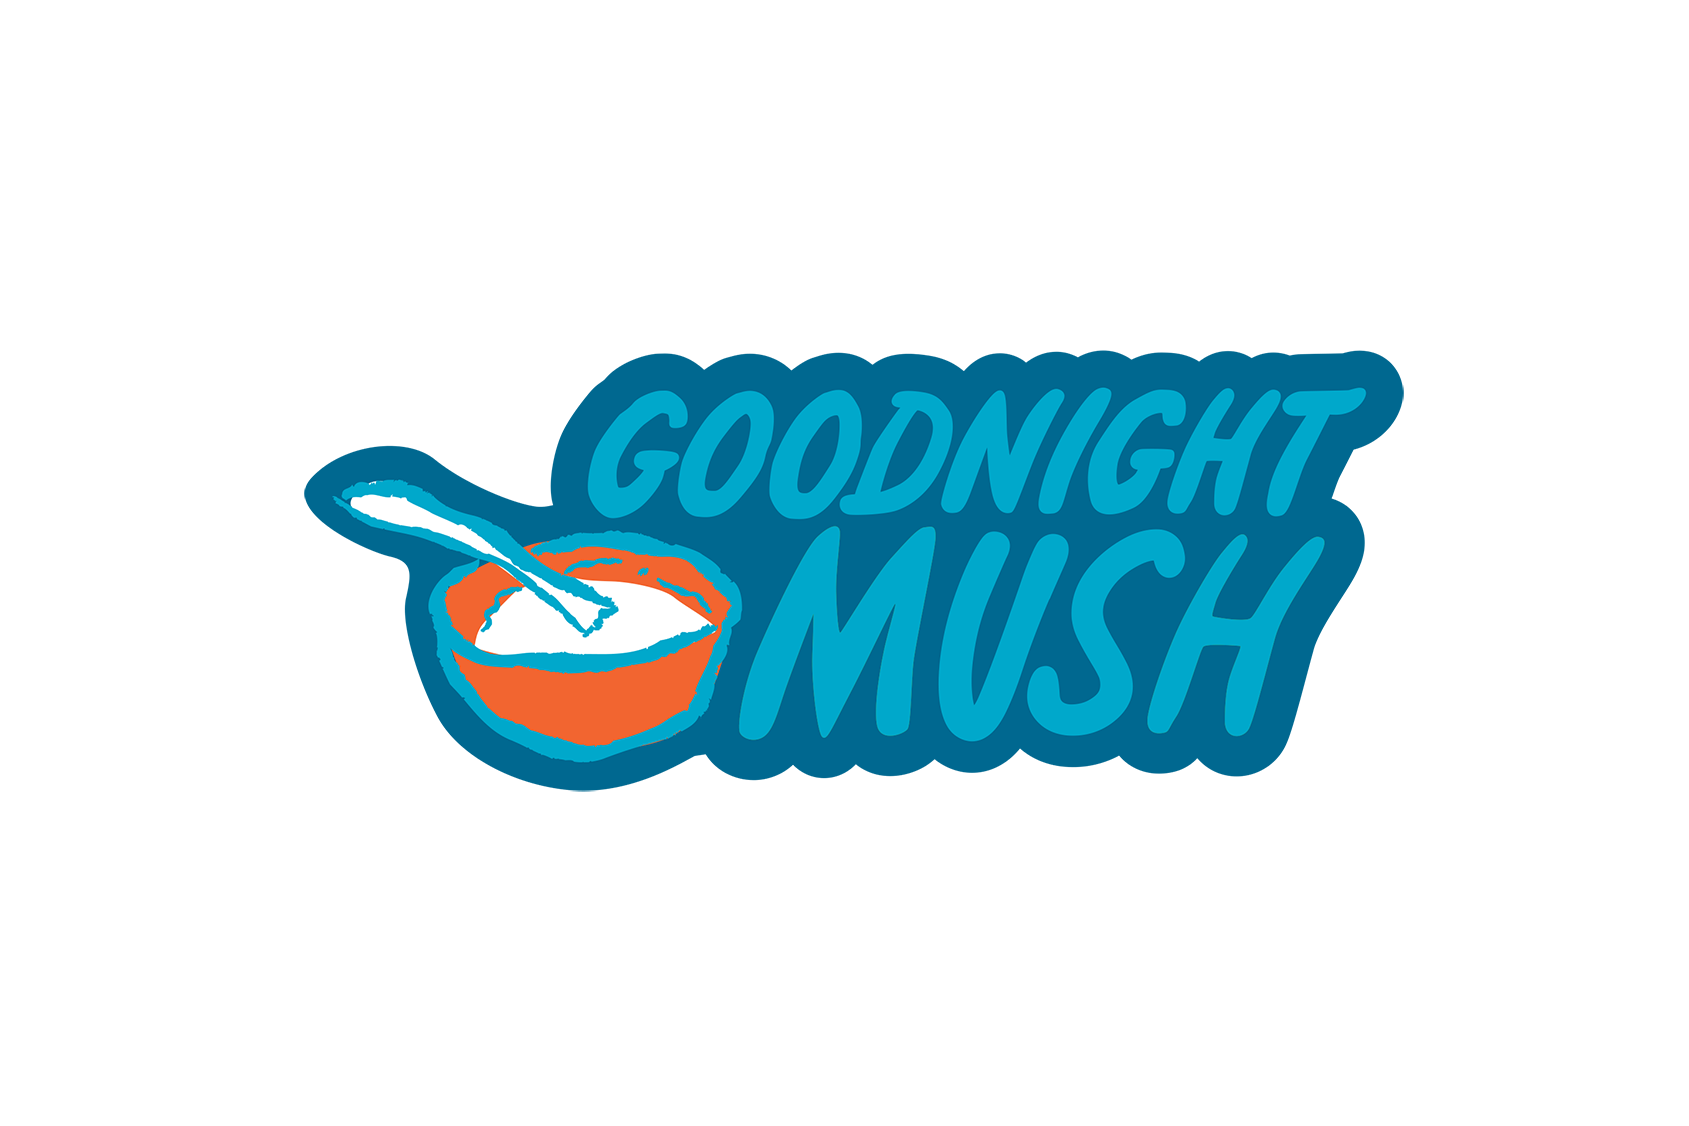 Pages-from-GoodnightMoon_7_29_10-3.png